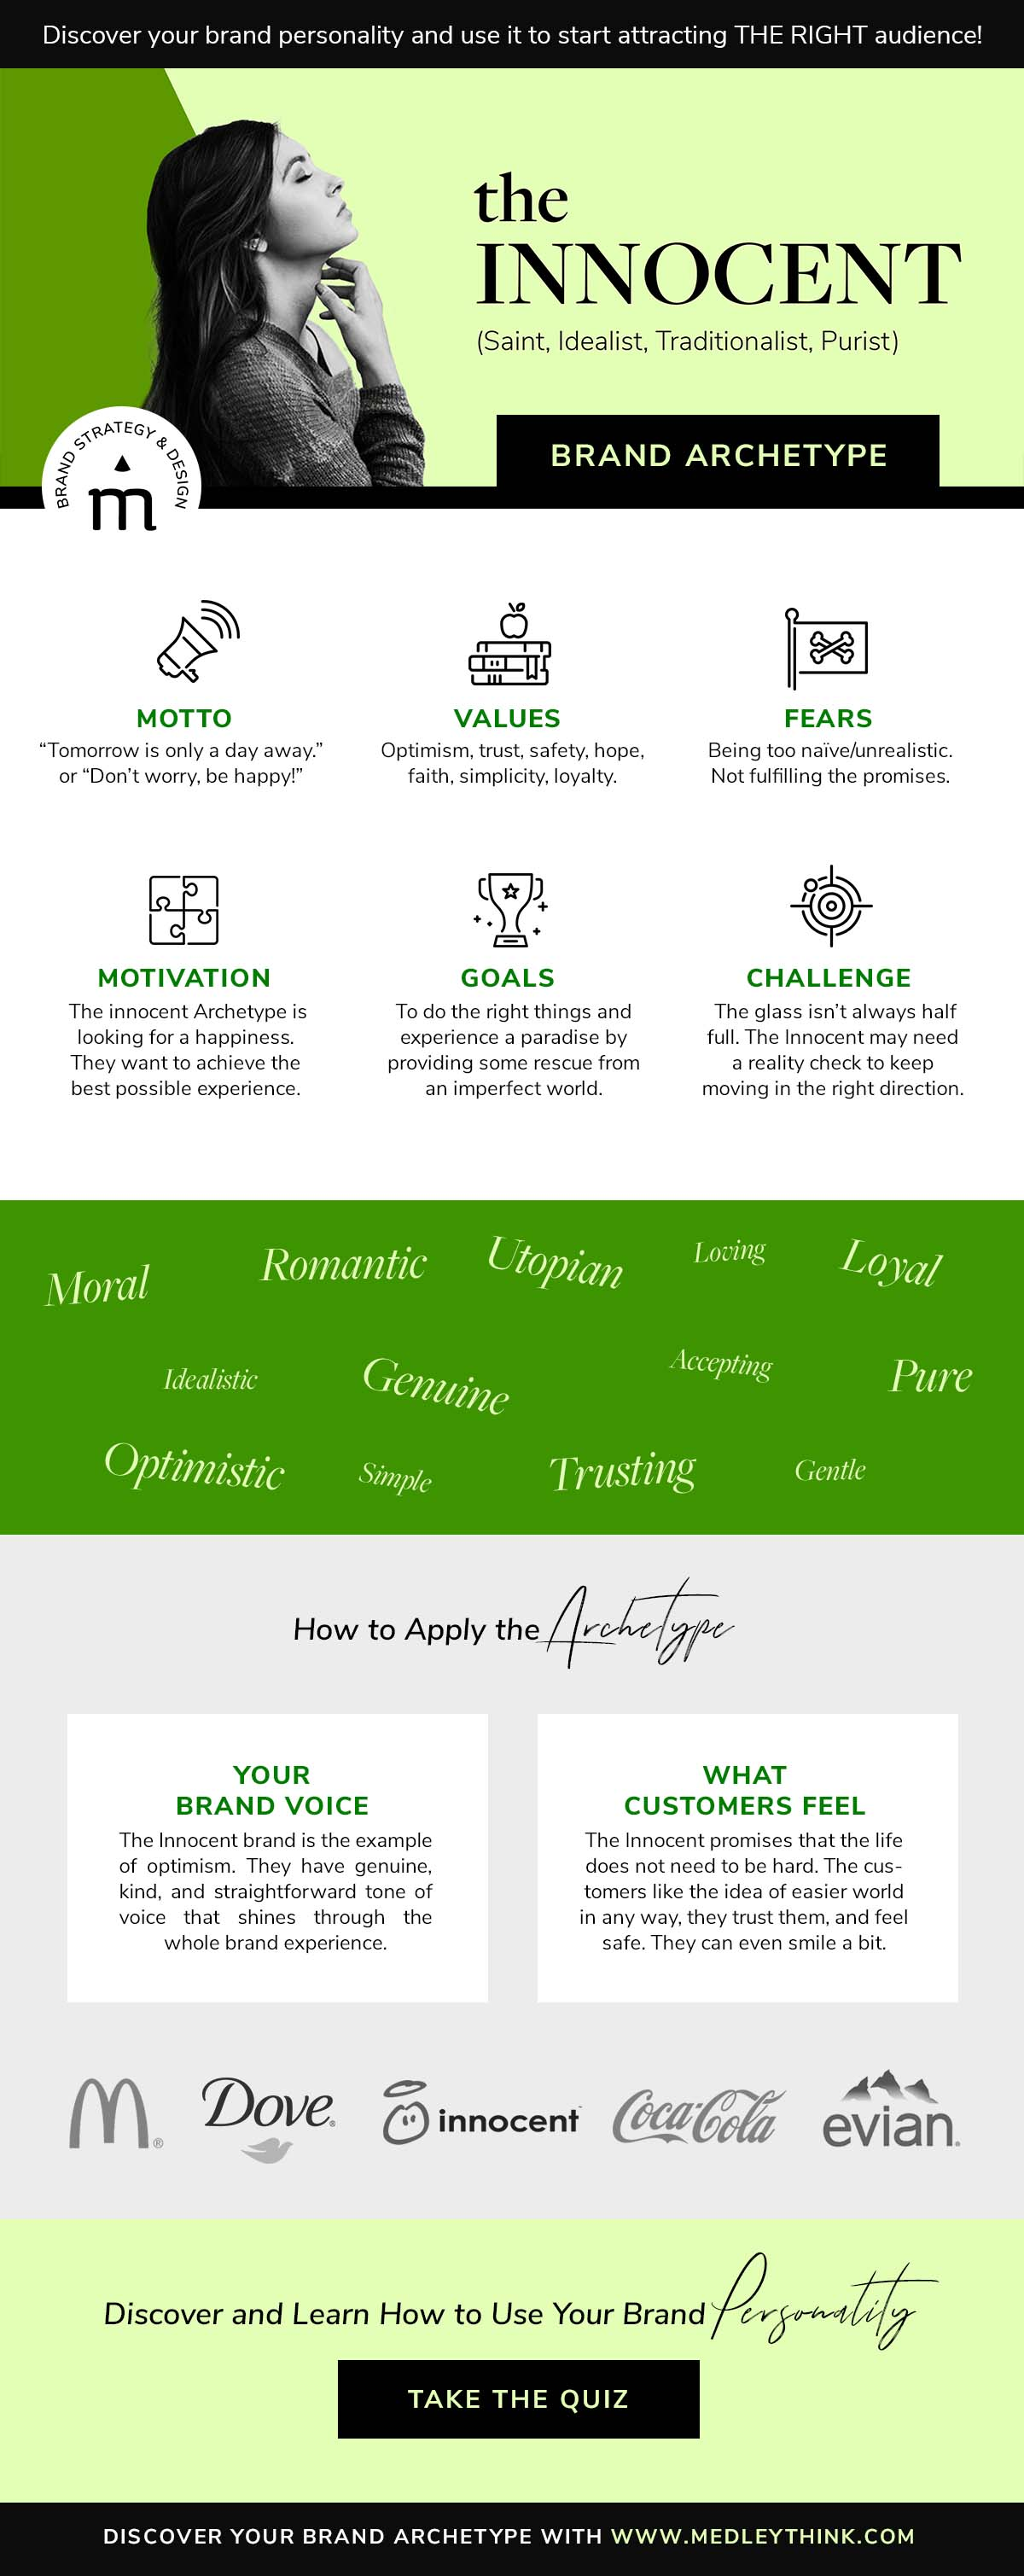 Innocent Brand Archetype // Get confident about your brand personality